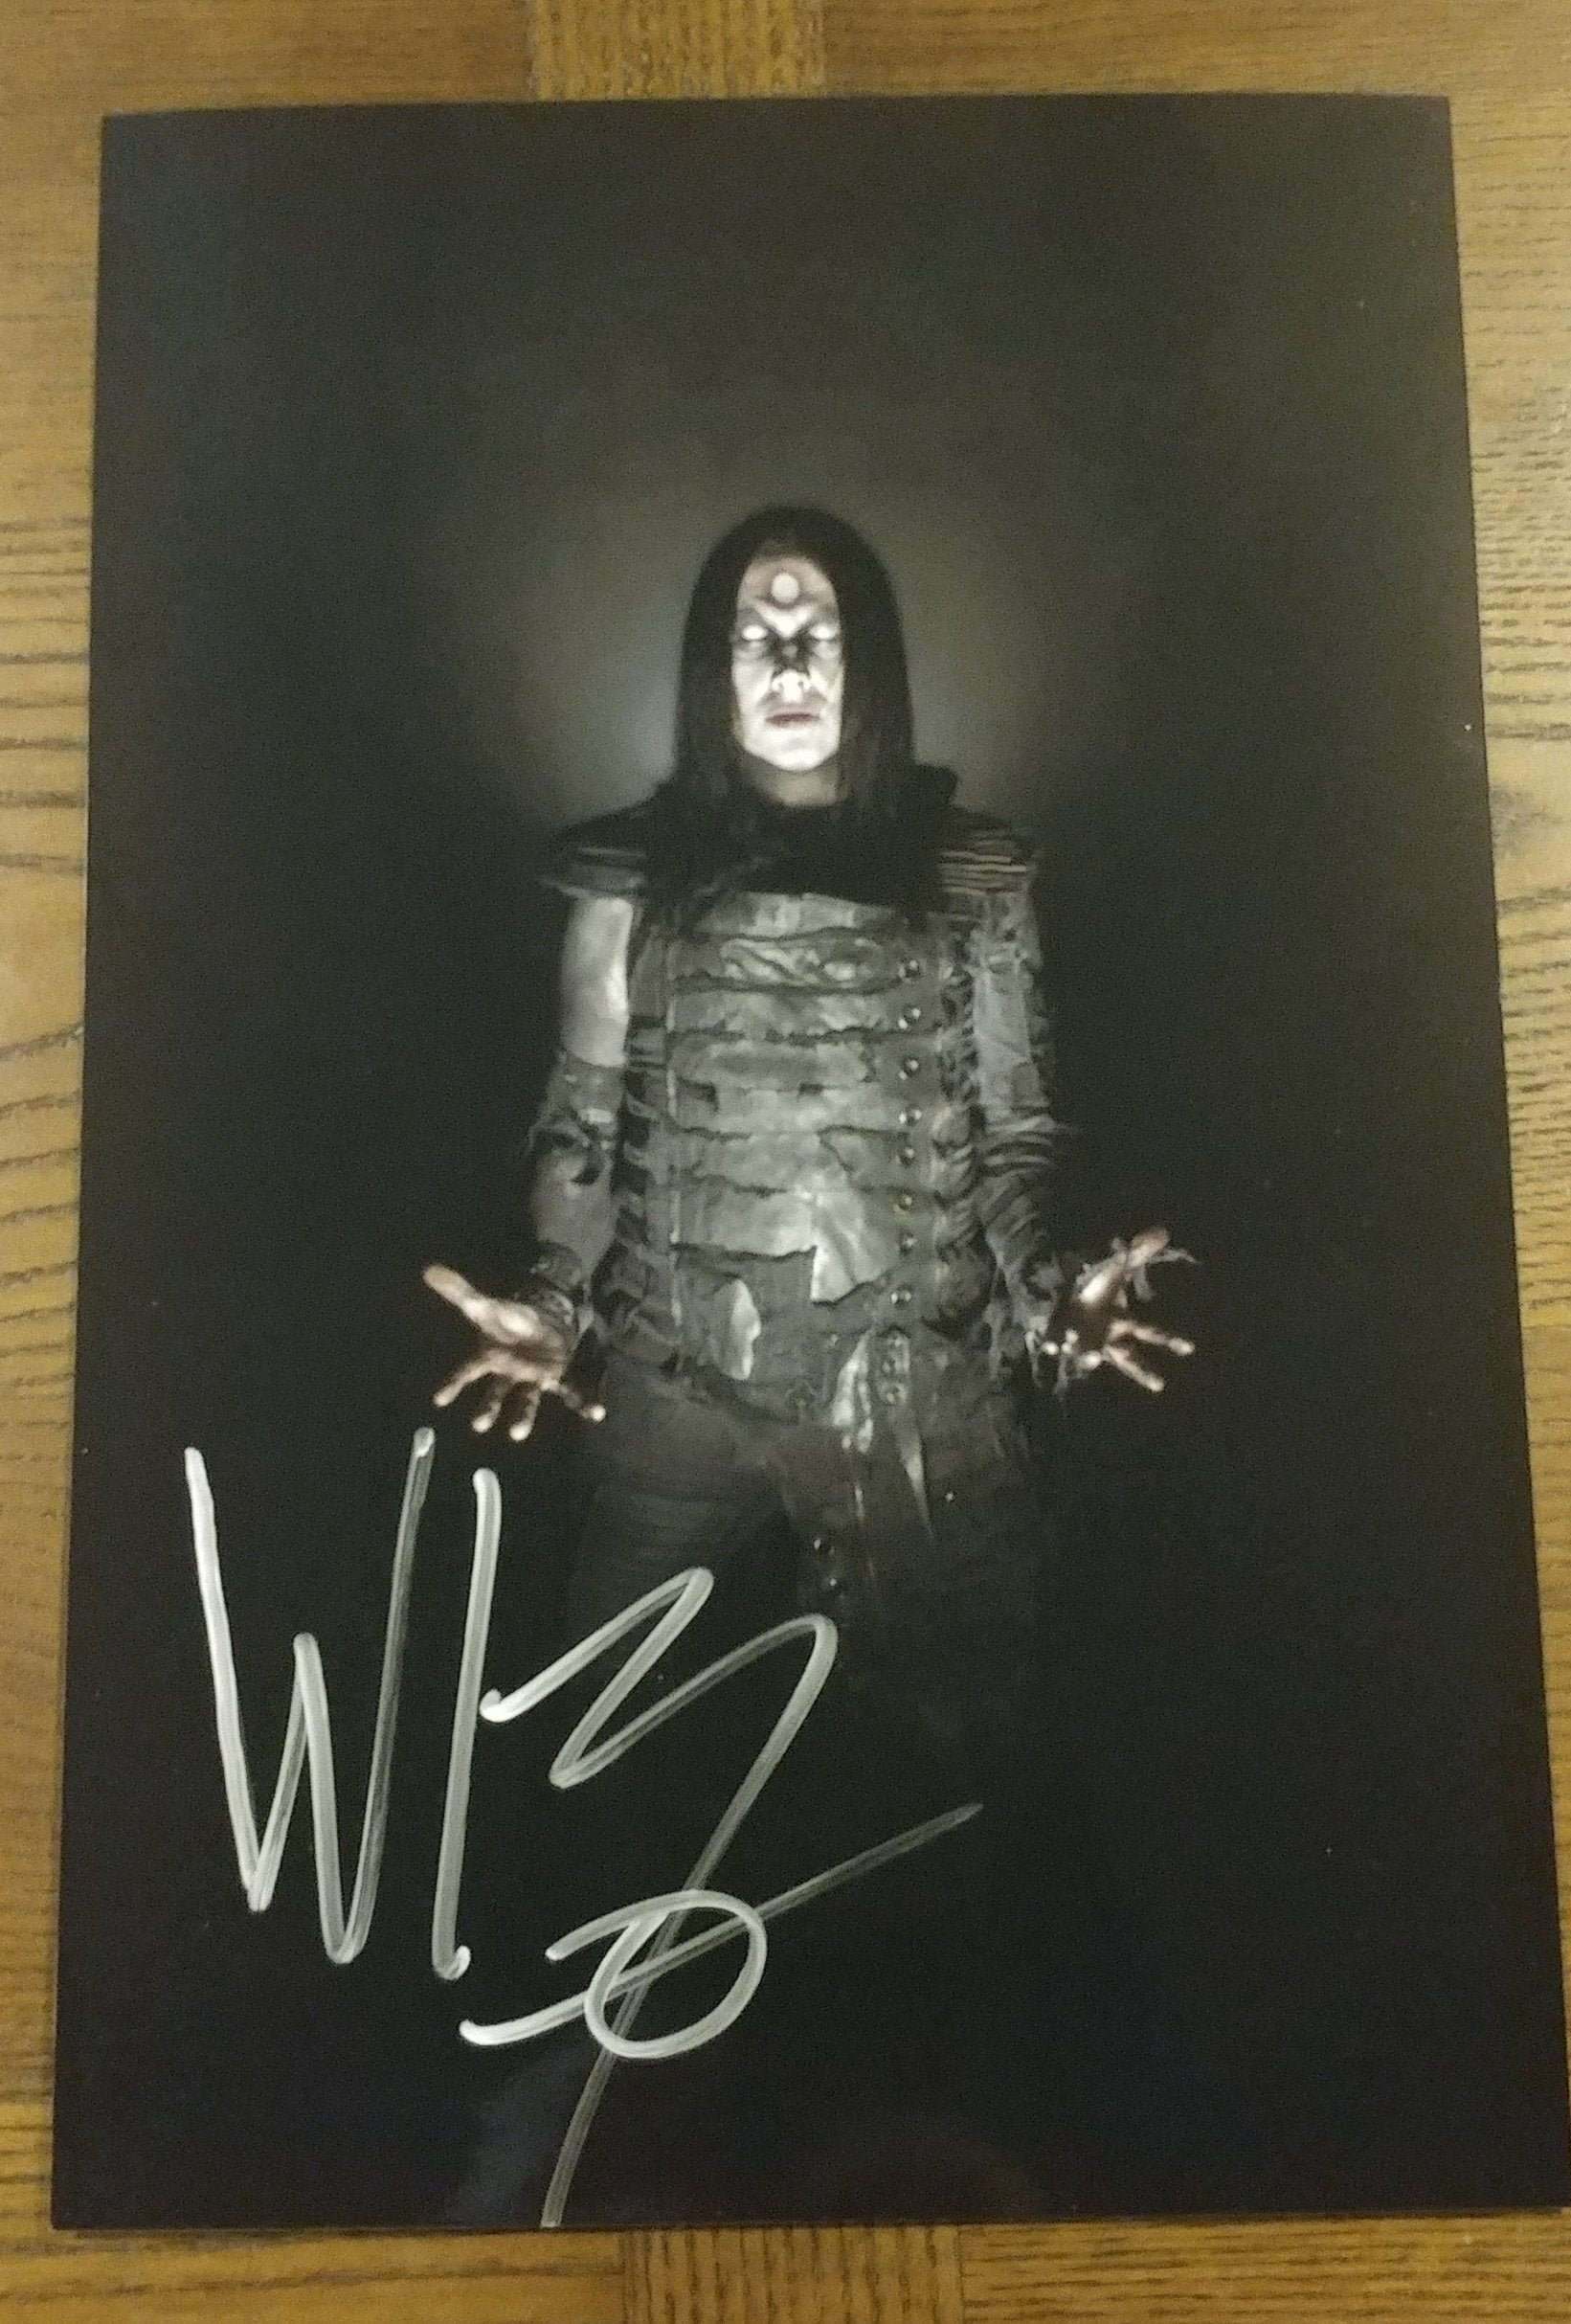 Wednesday 13 - Death Infinity - signed limited edition 8x12 metallic print (4 available)